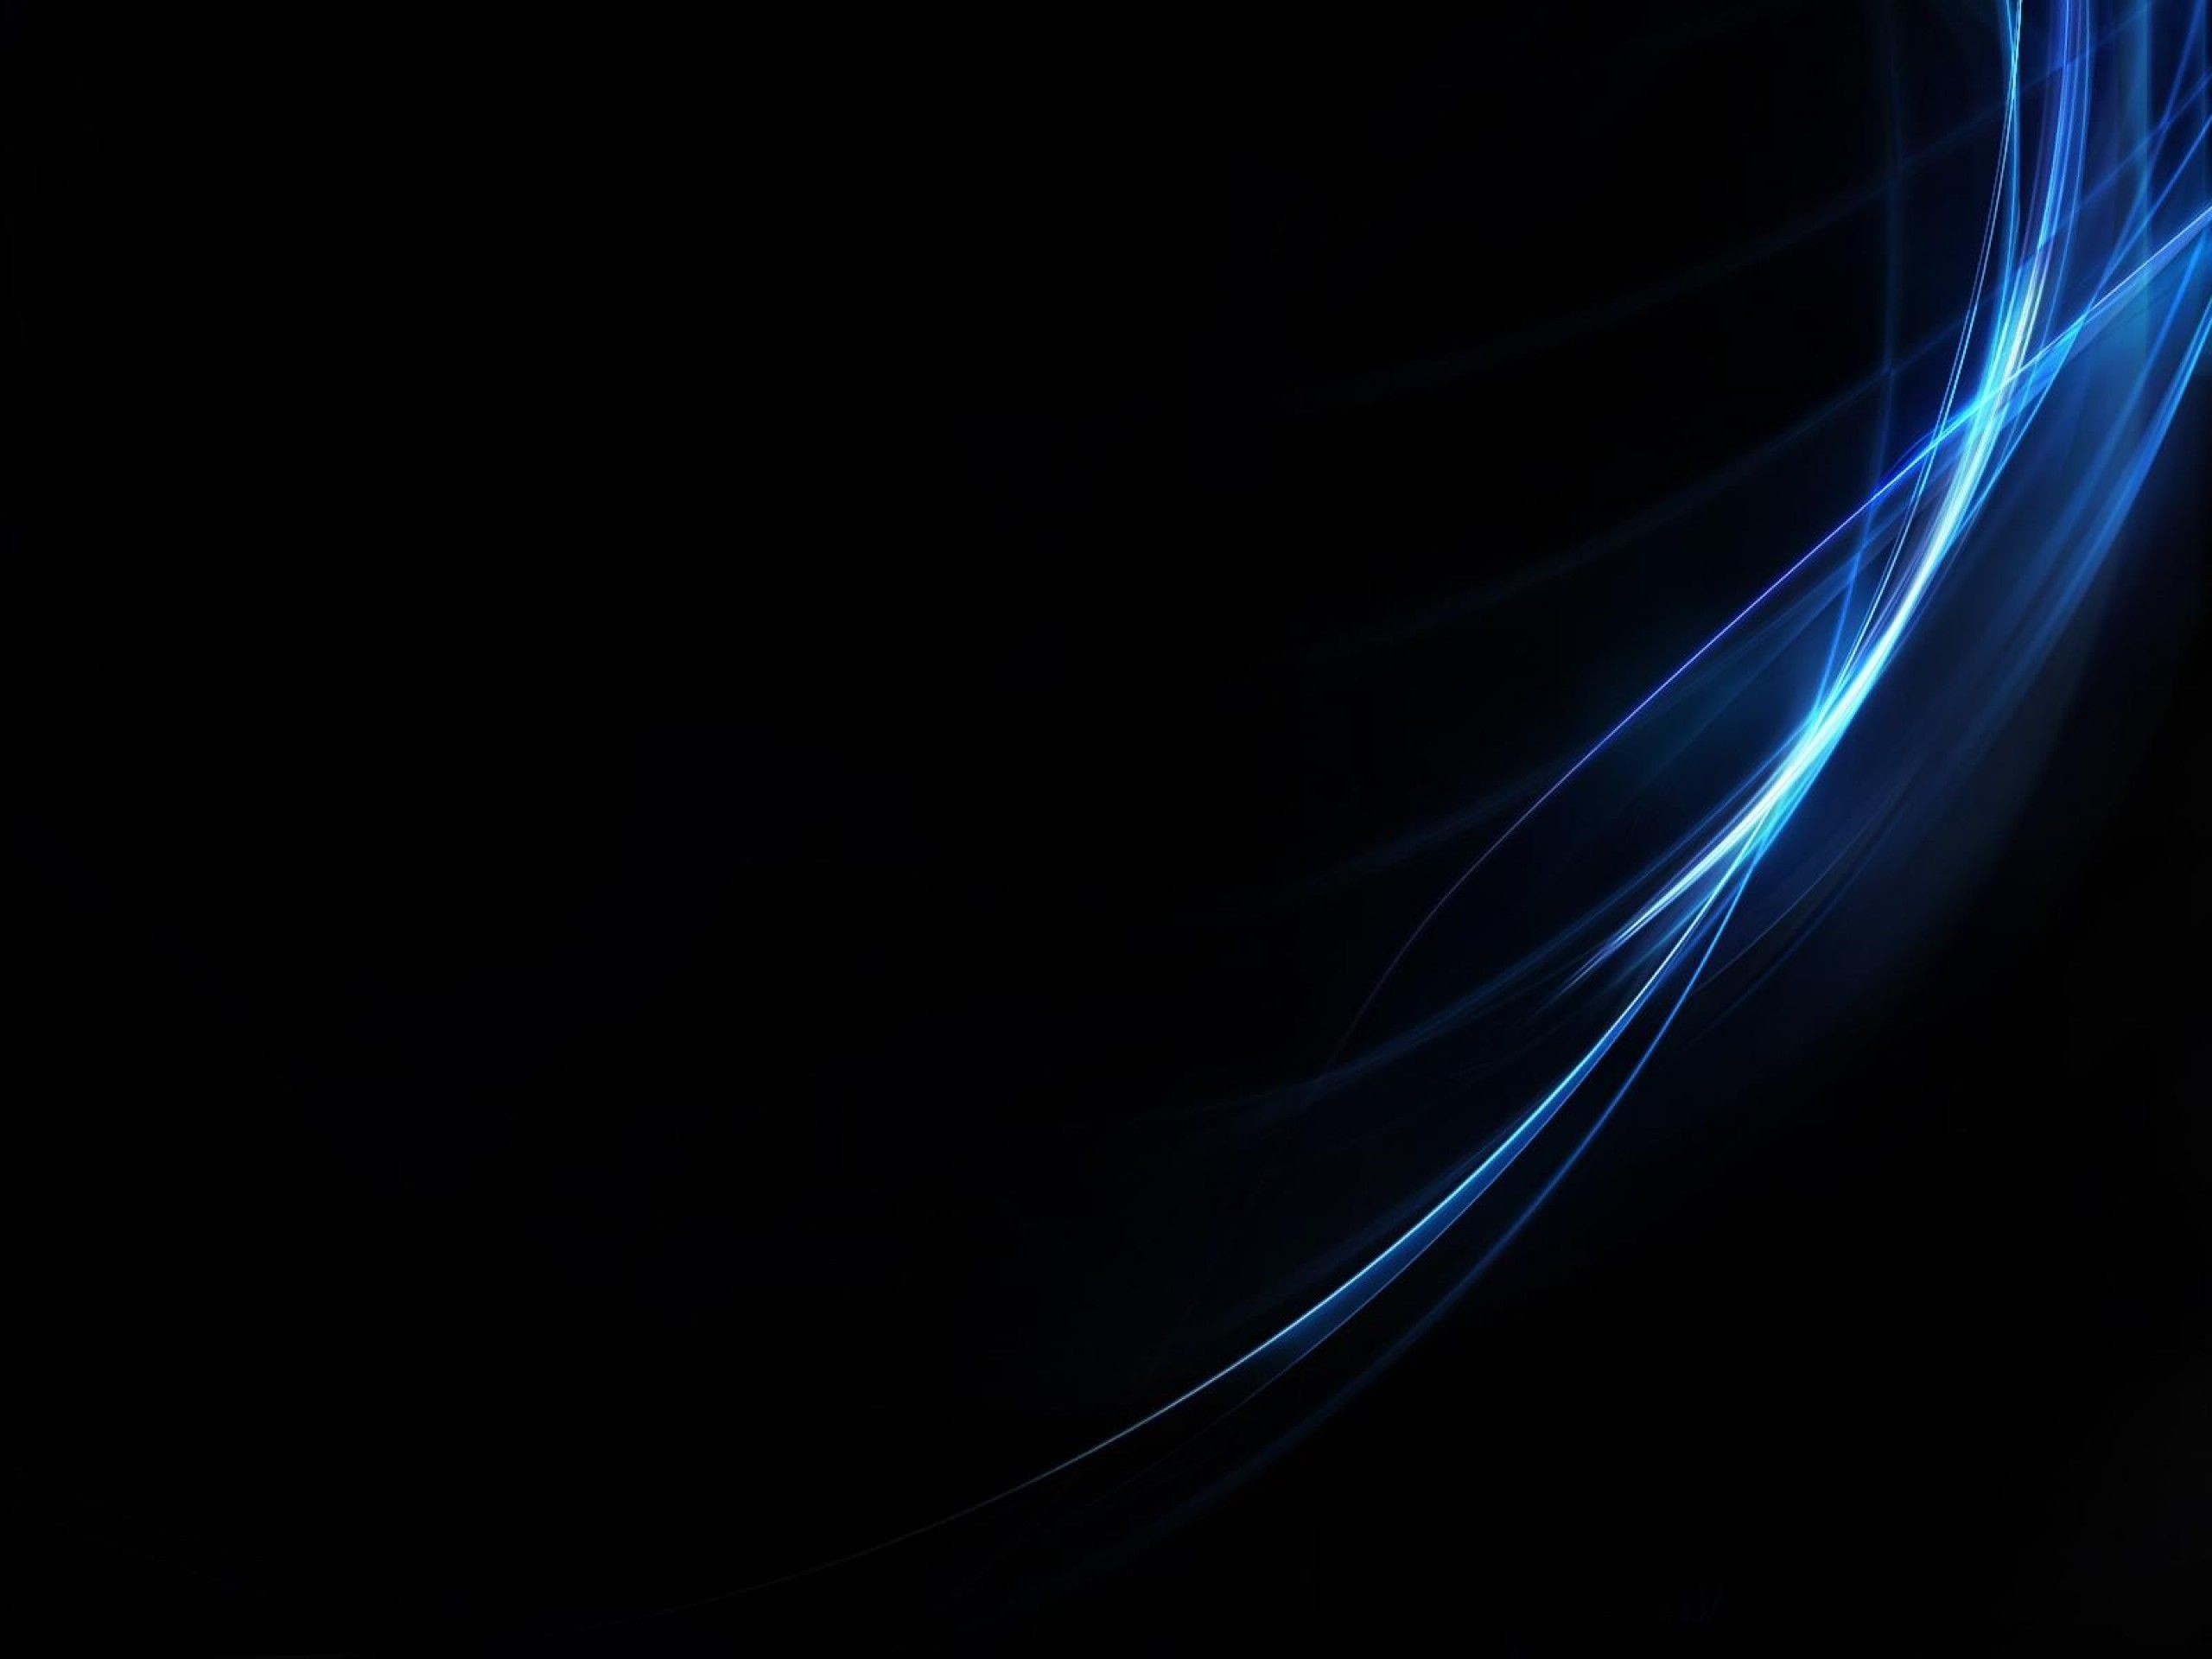 Plain Black Background Images 2216 – HD Wallpapers Site